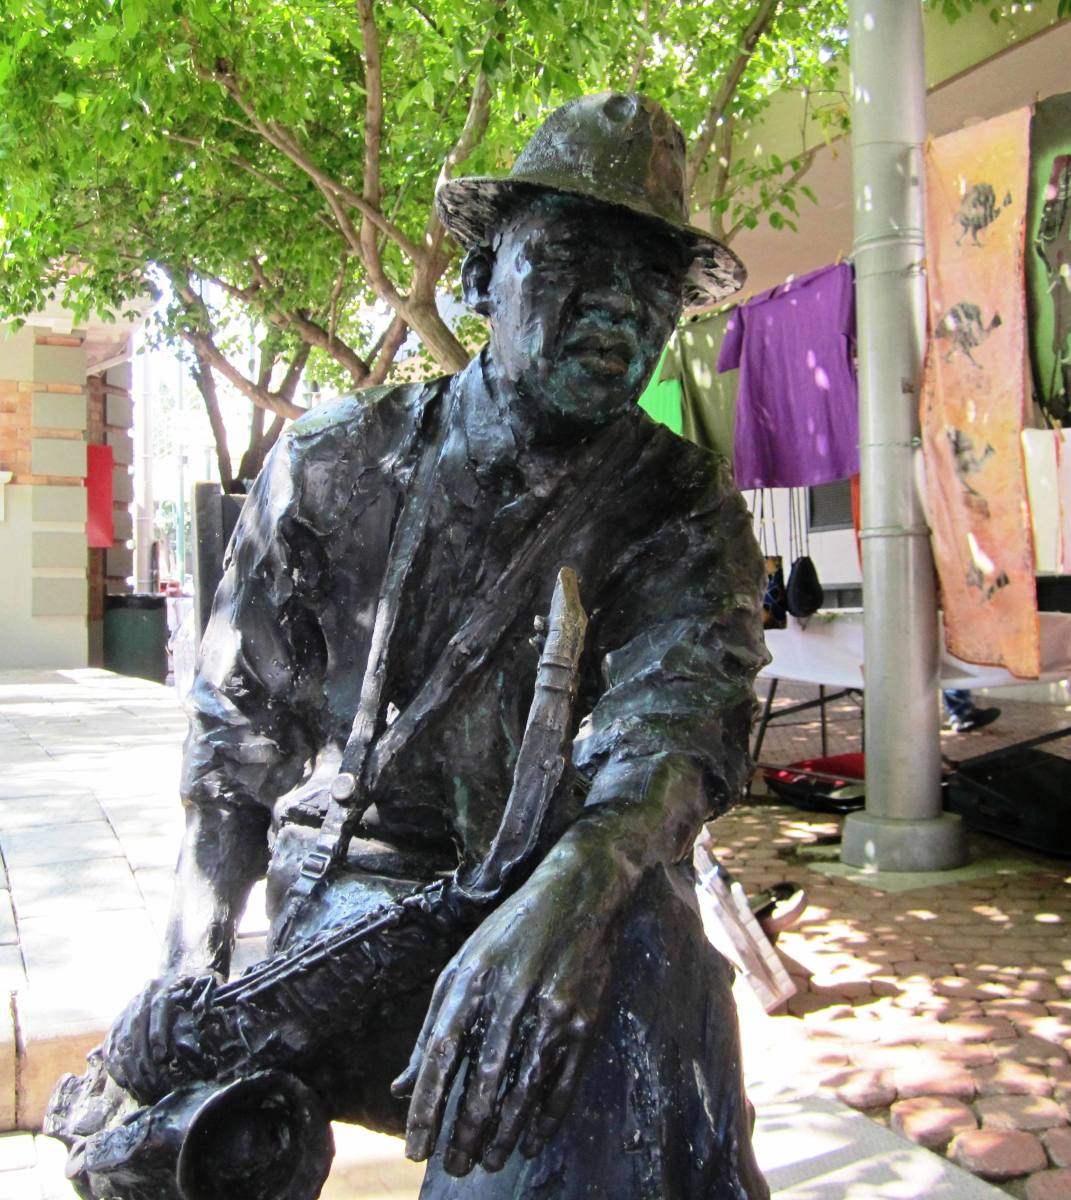 The bronze sculpture of Kippie 'Morolong' Moeketsi (1925-1983) a legendary South African jazz saxophonist.